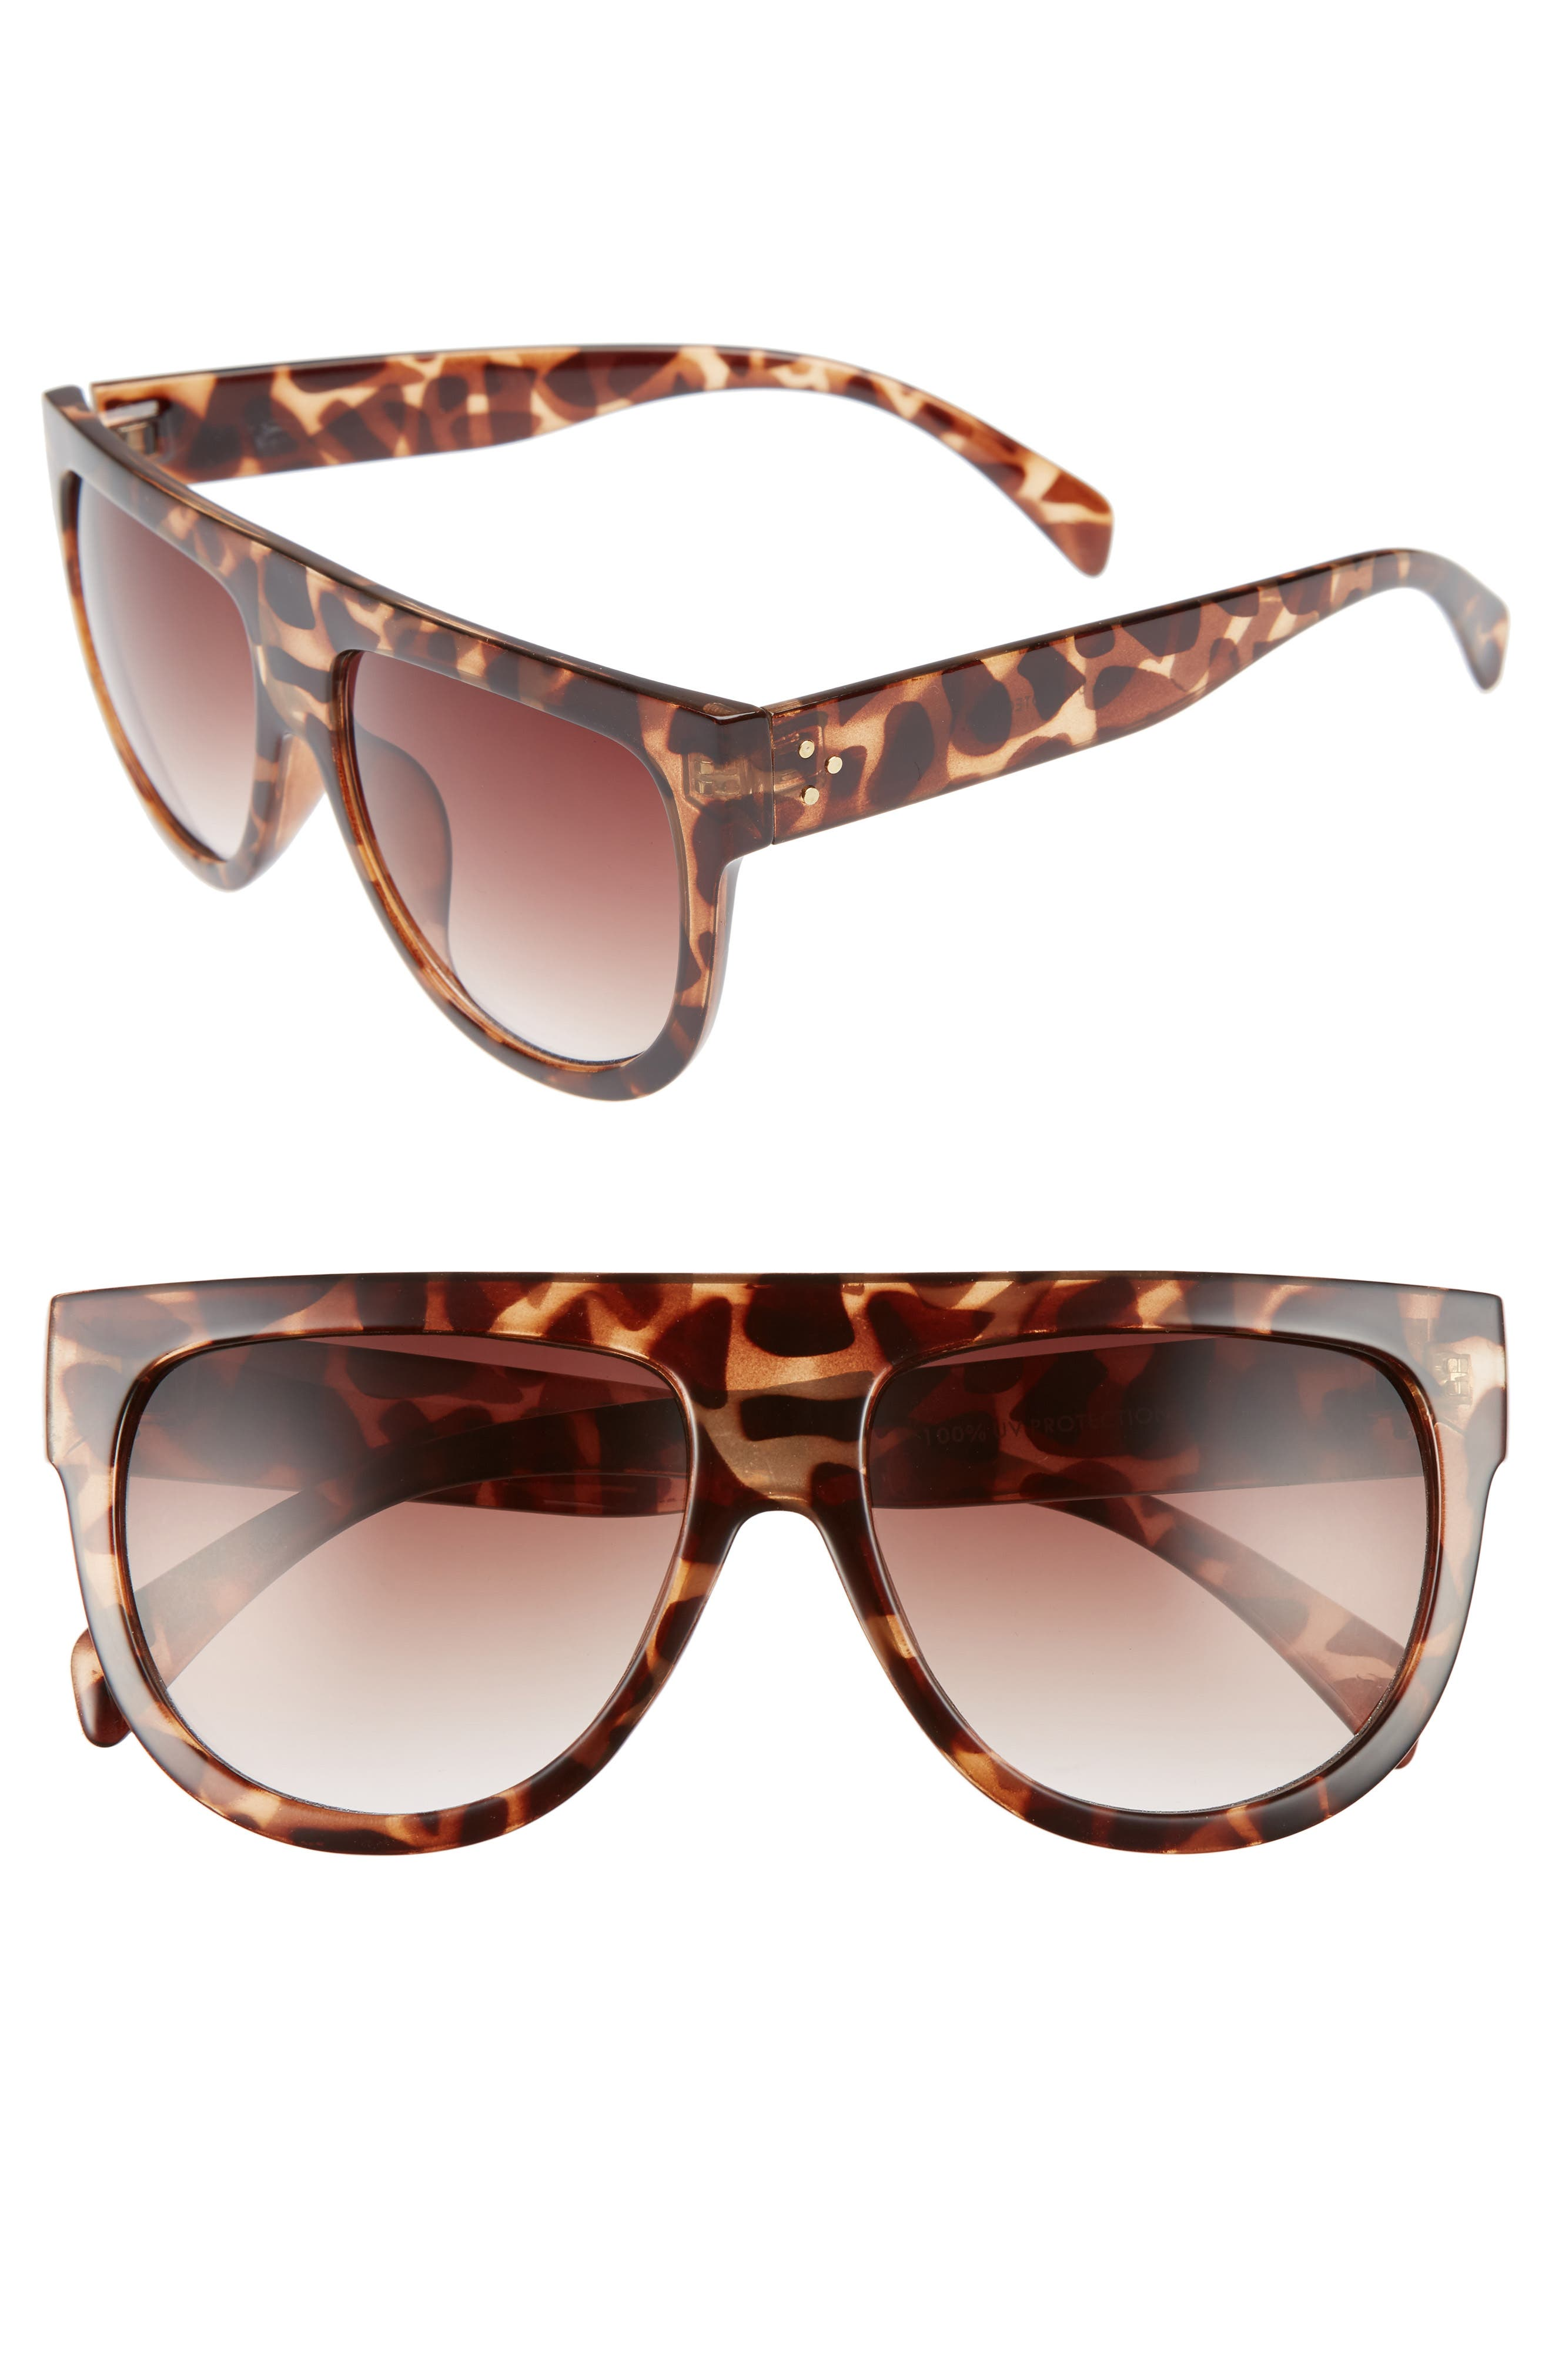 Alternate Image 1 Selected - BP. Lunette 40mm Shield Sunglasses